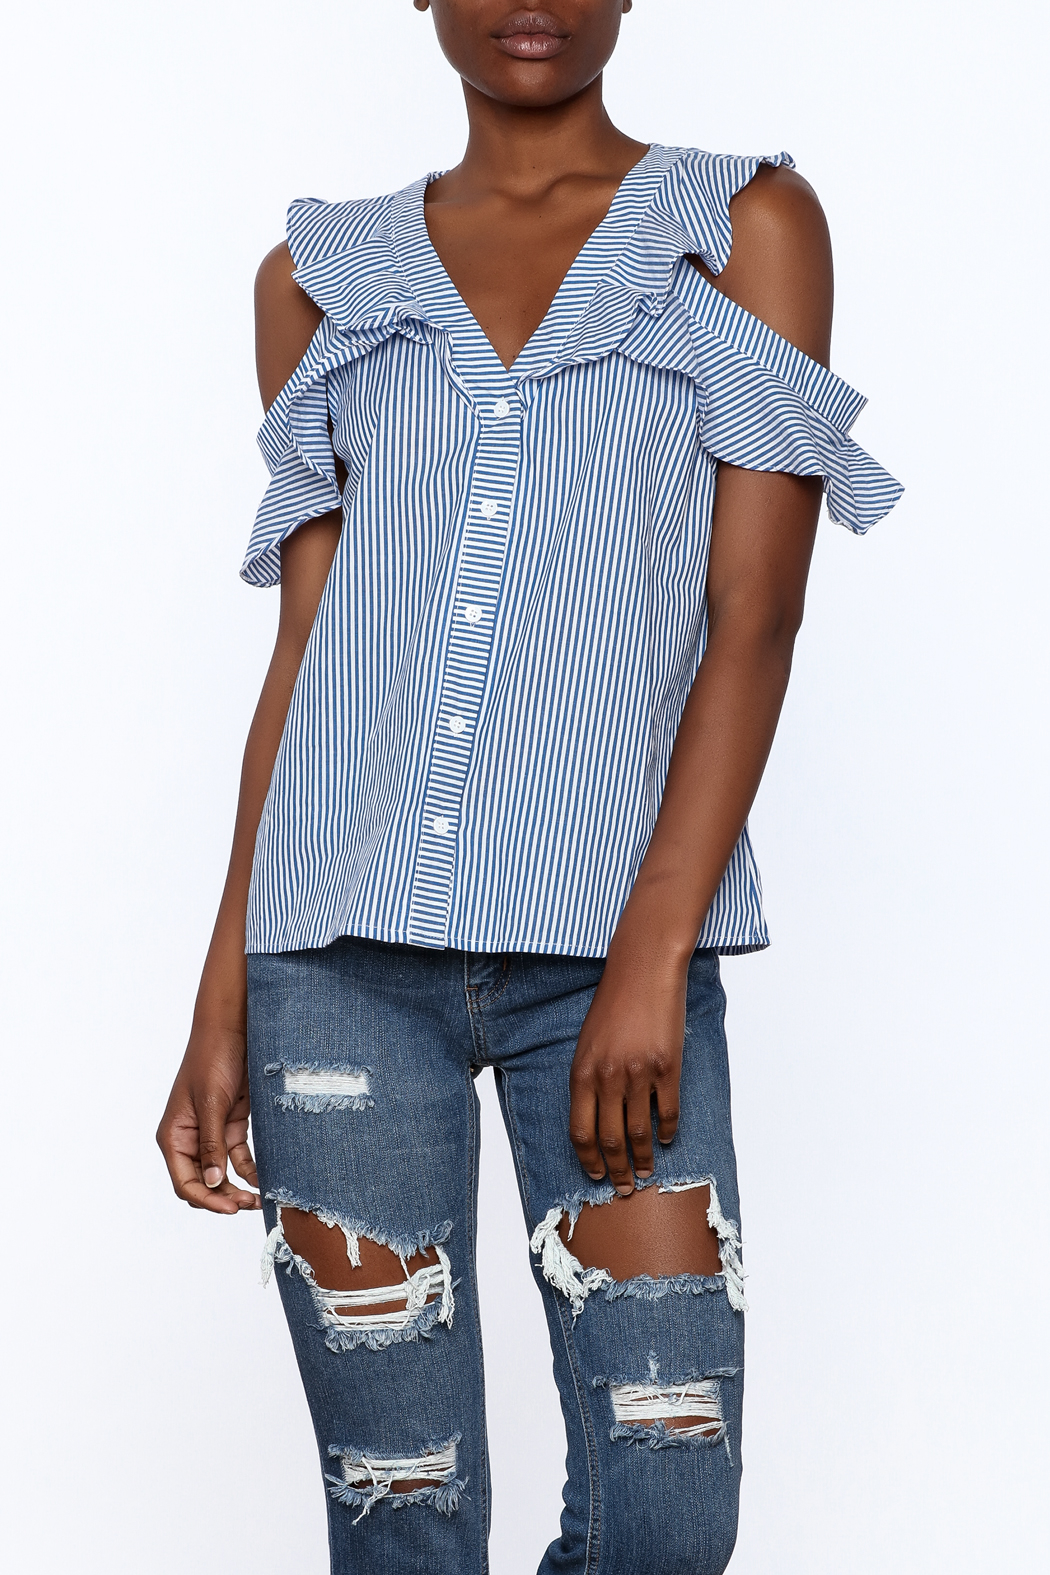 Do & Be Blue Stripe Body Top - Main Image